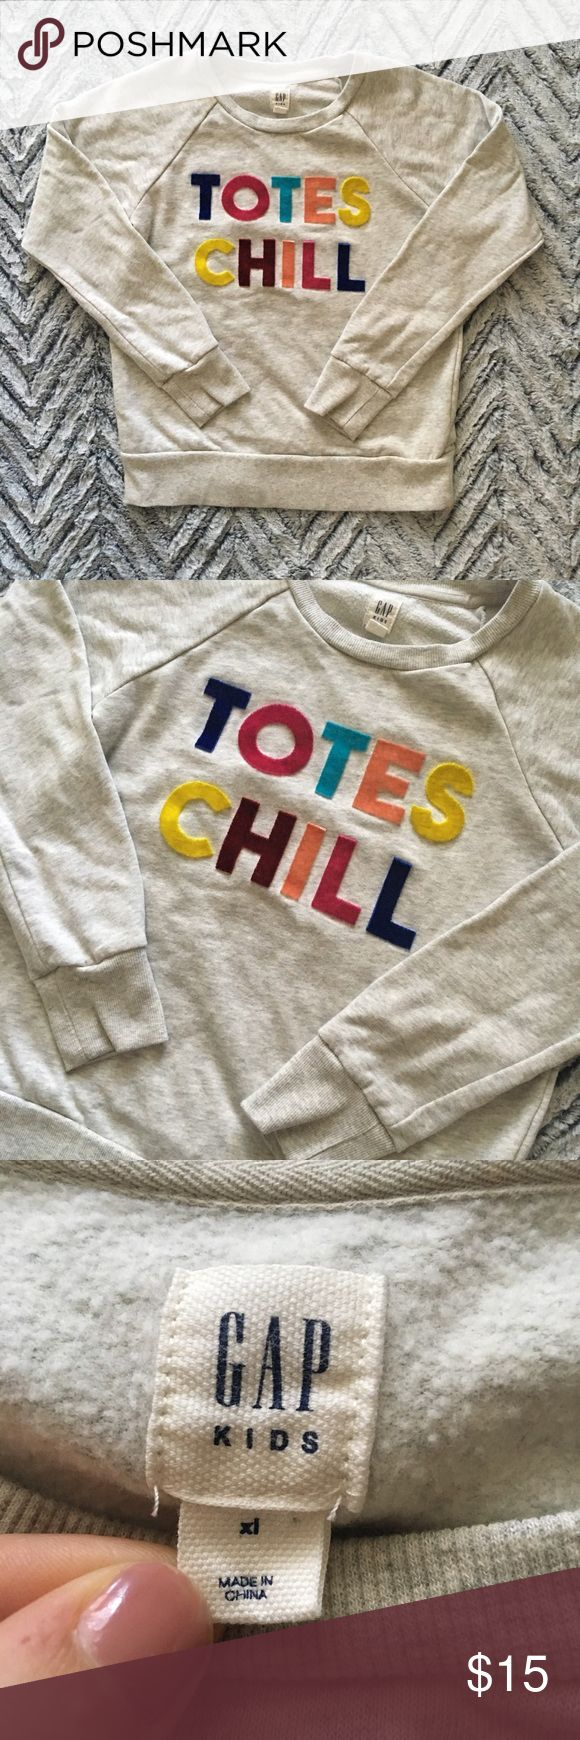 "Gap Totes Chill Long Sleeve Sweatshirt Pit to pit: 16"" Length: 22"" Sleeve: 23.5"" from neck hem GAP Shirts & Tops Sweatshirts & Hoodies"